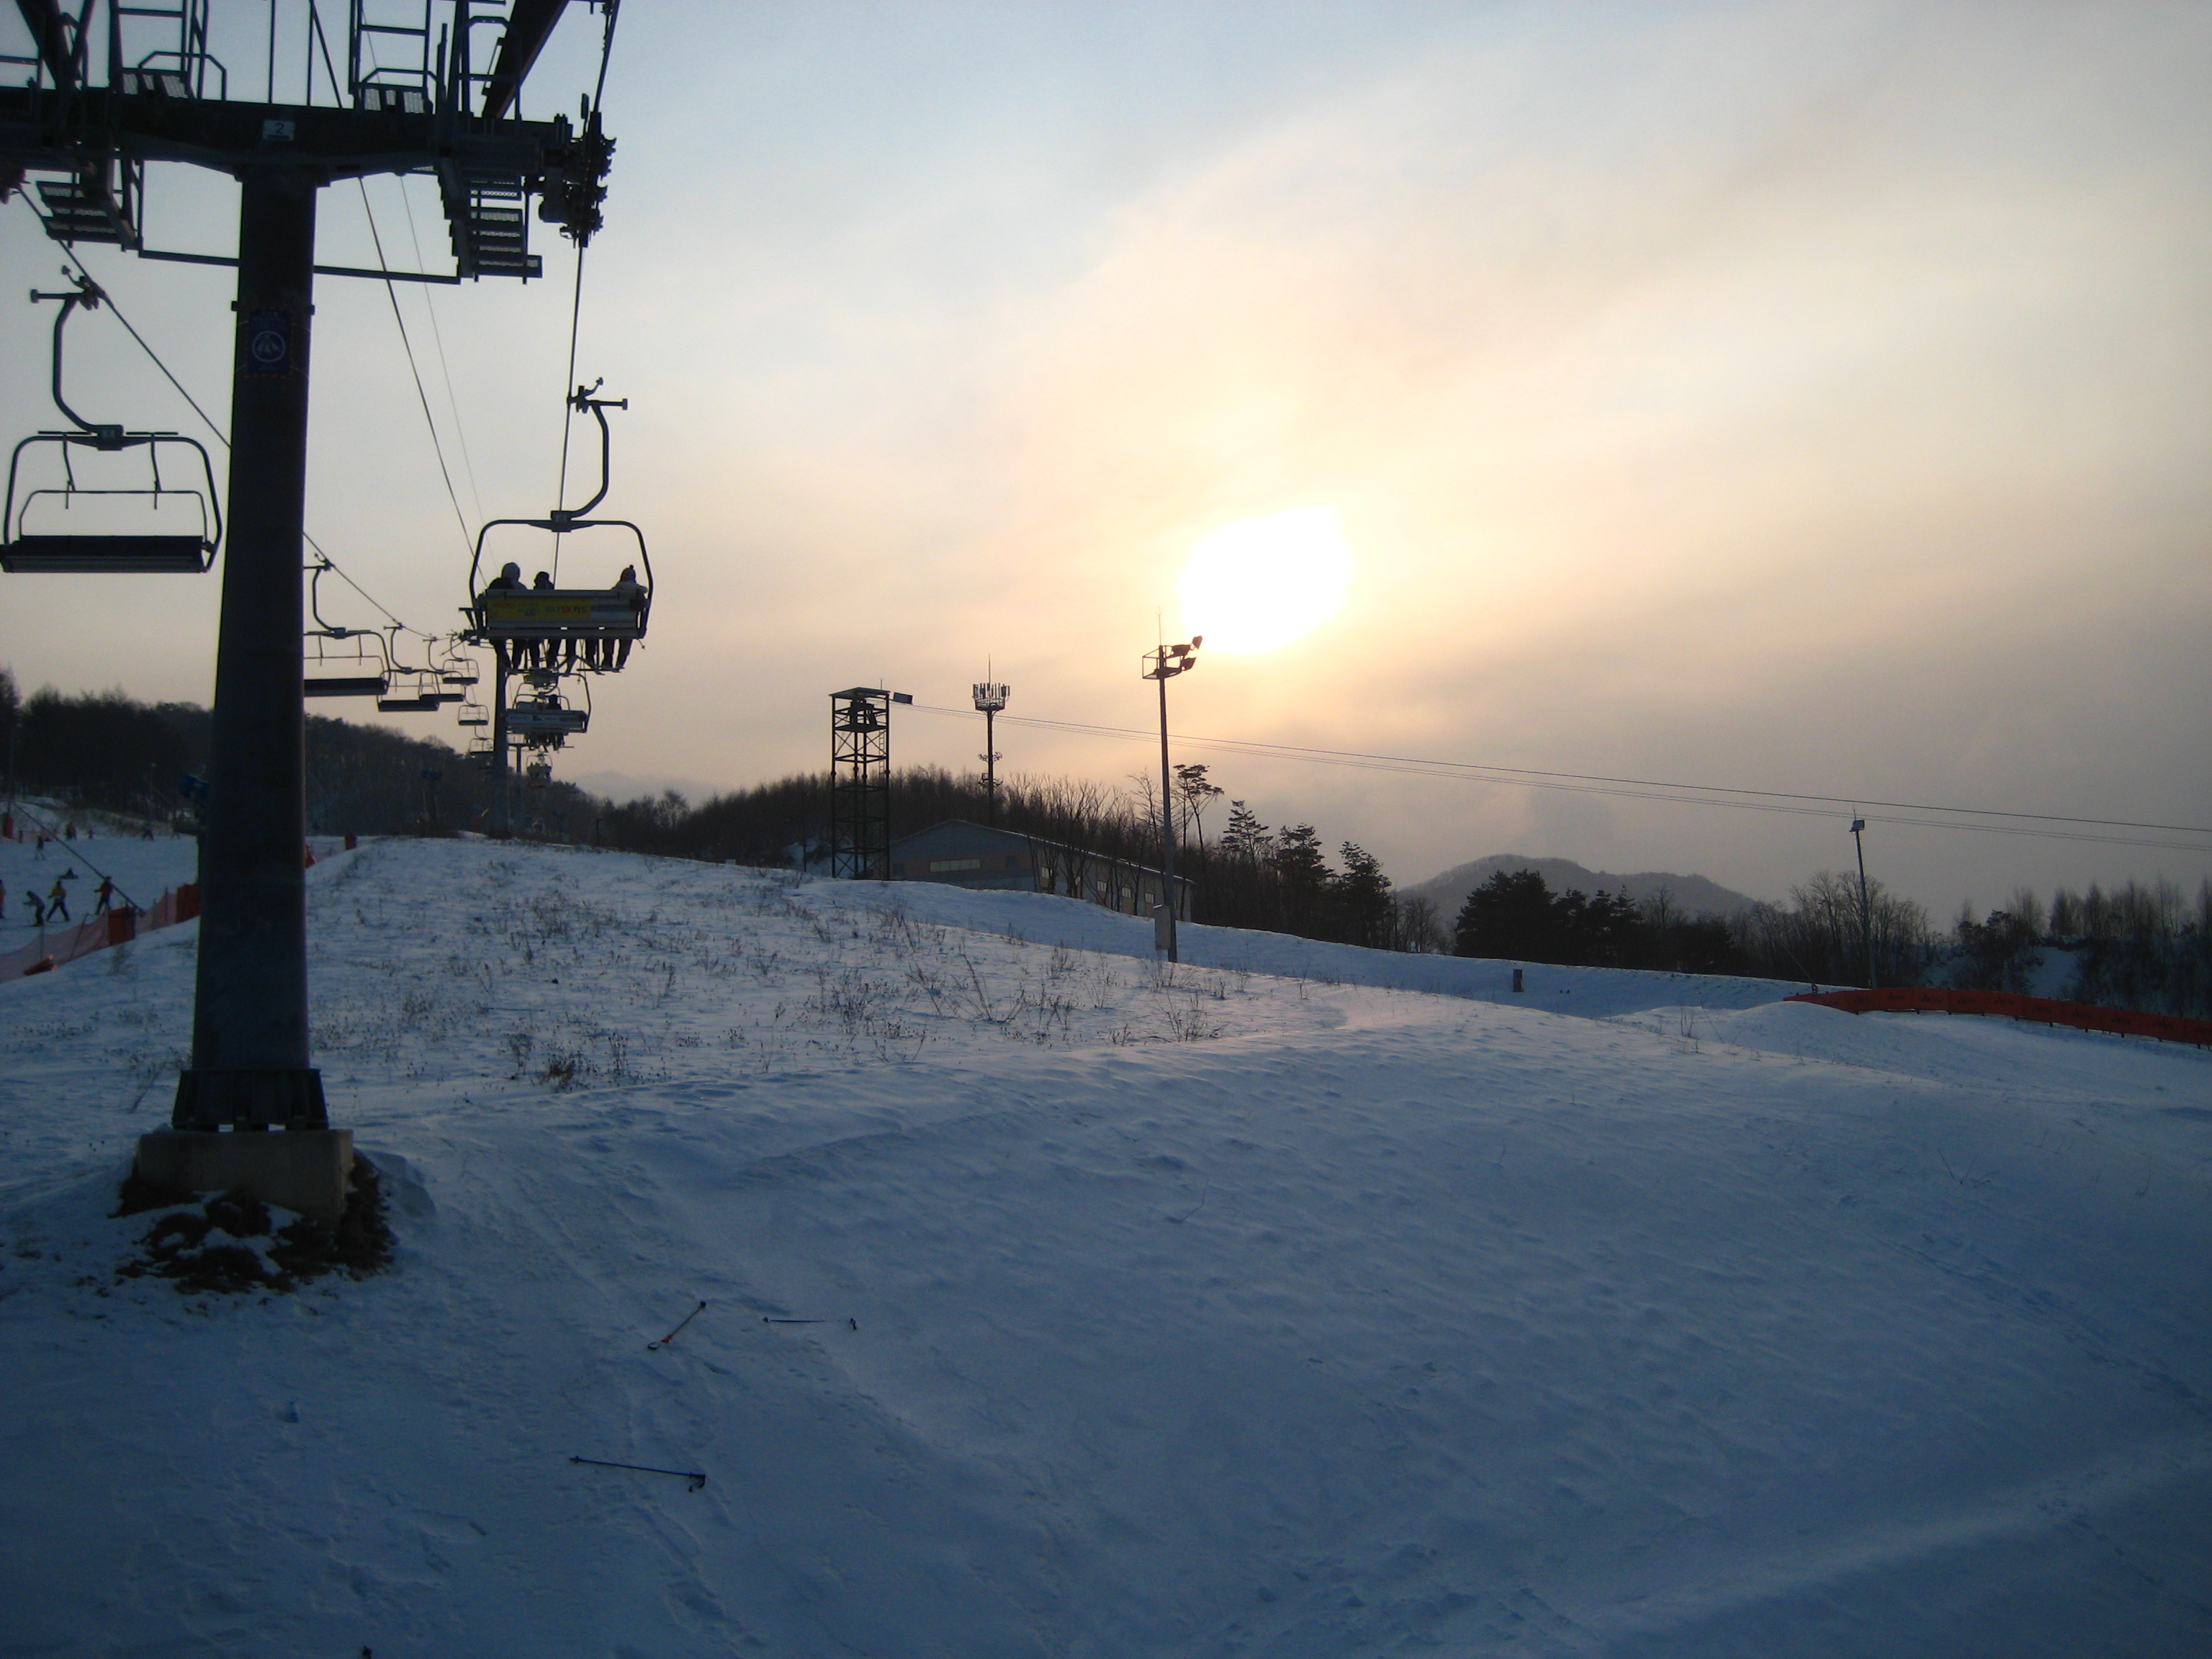 Alpensia Ski Resort, Korea